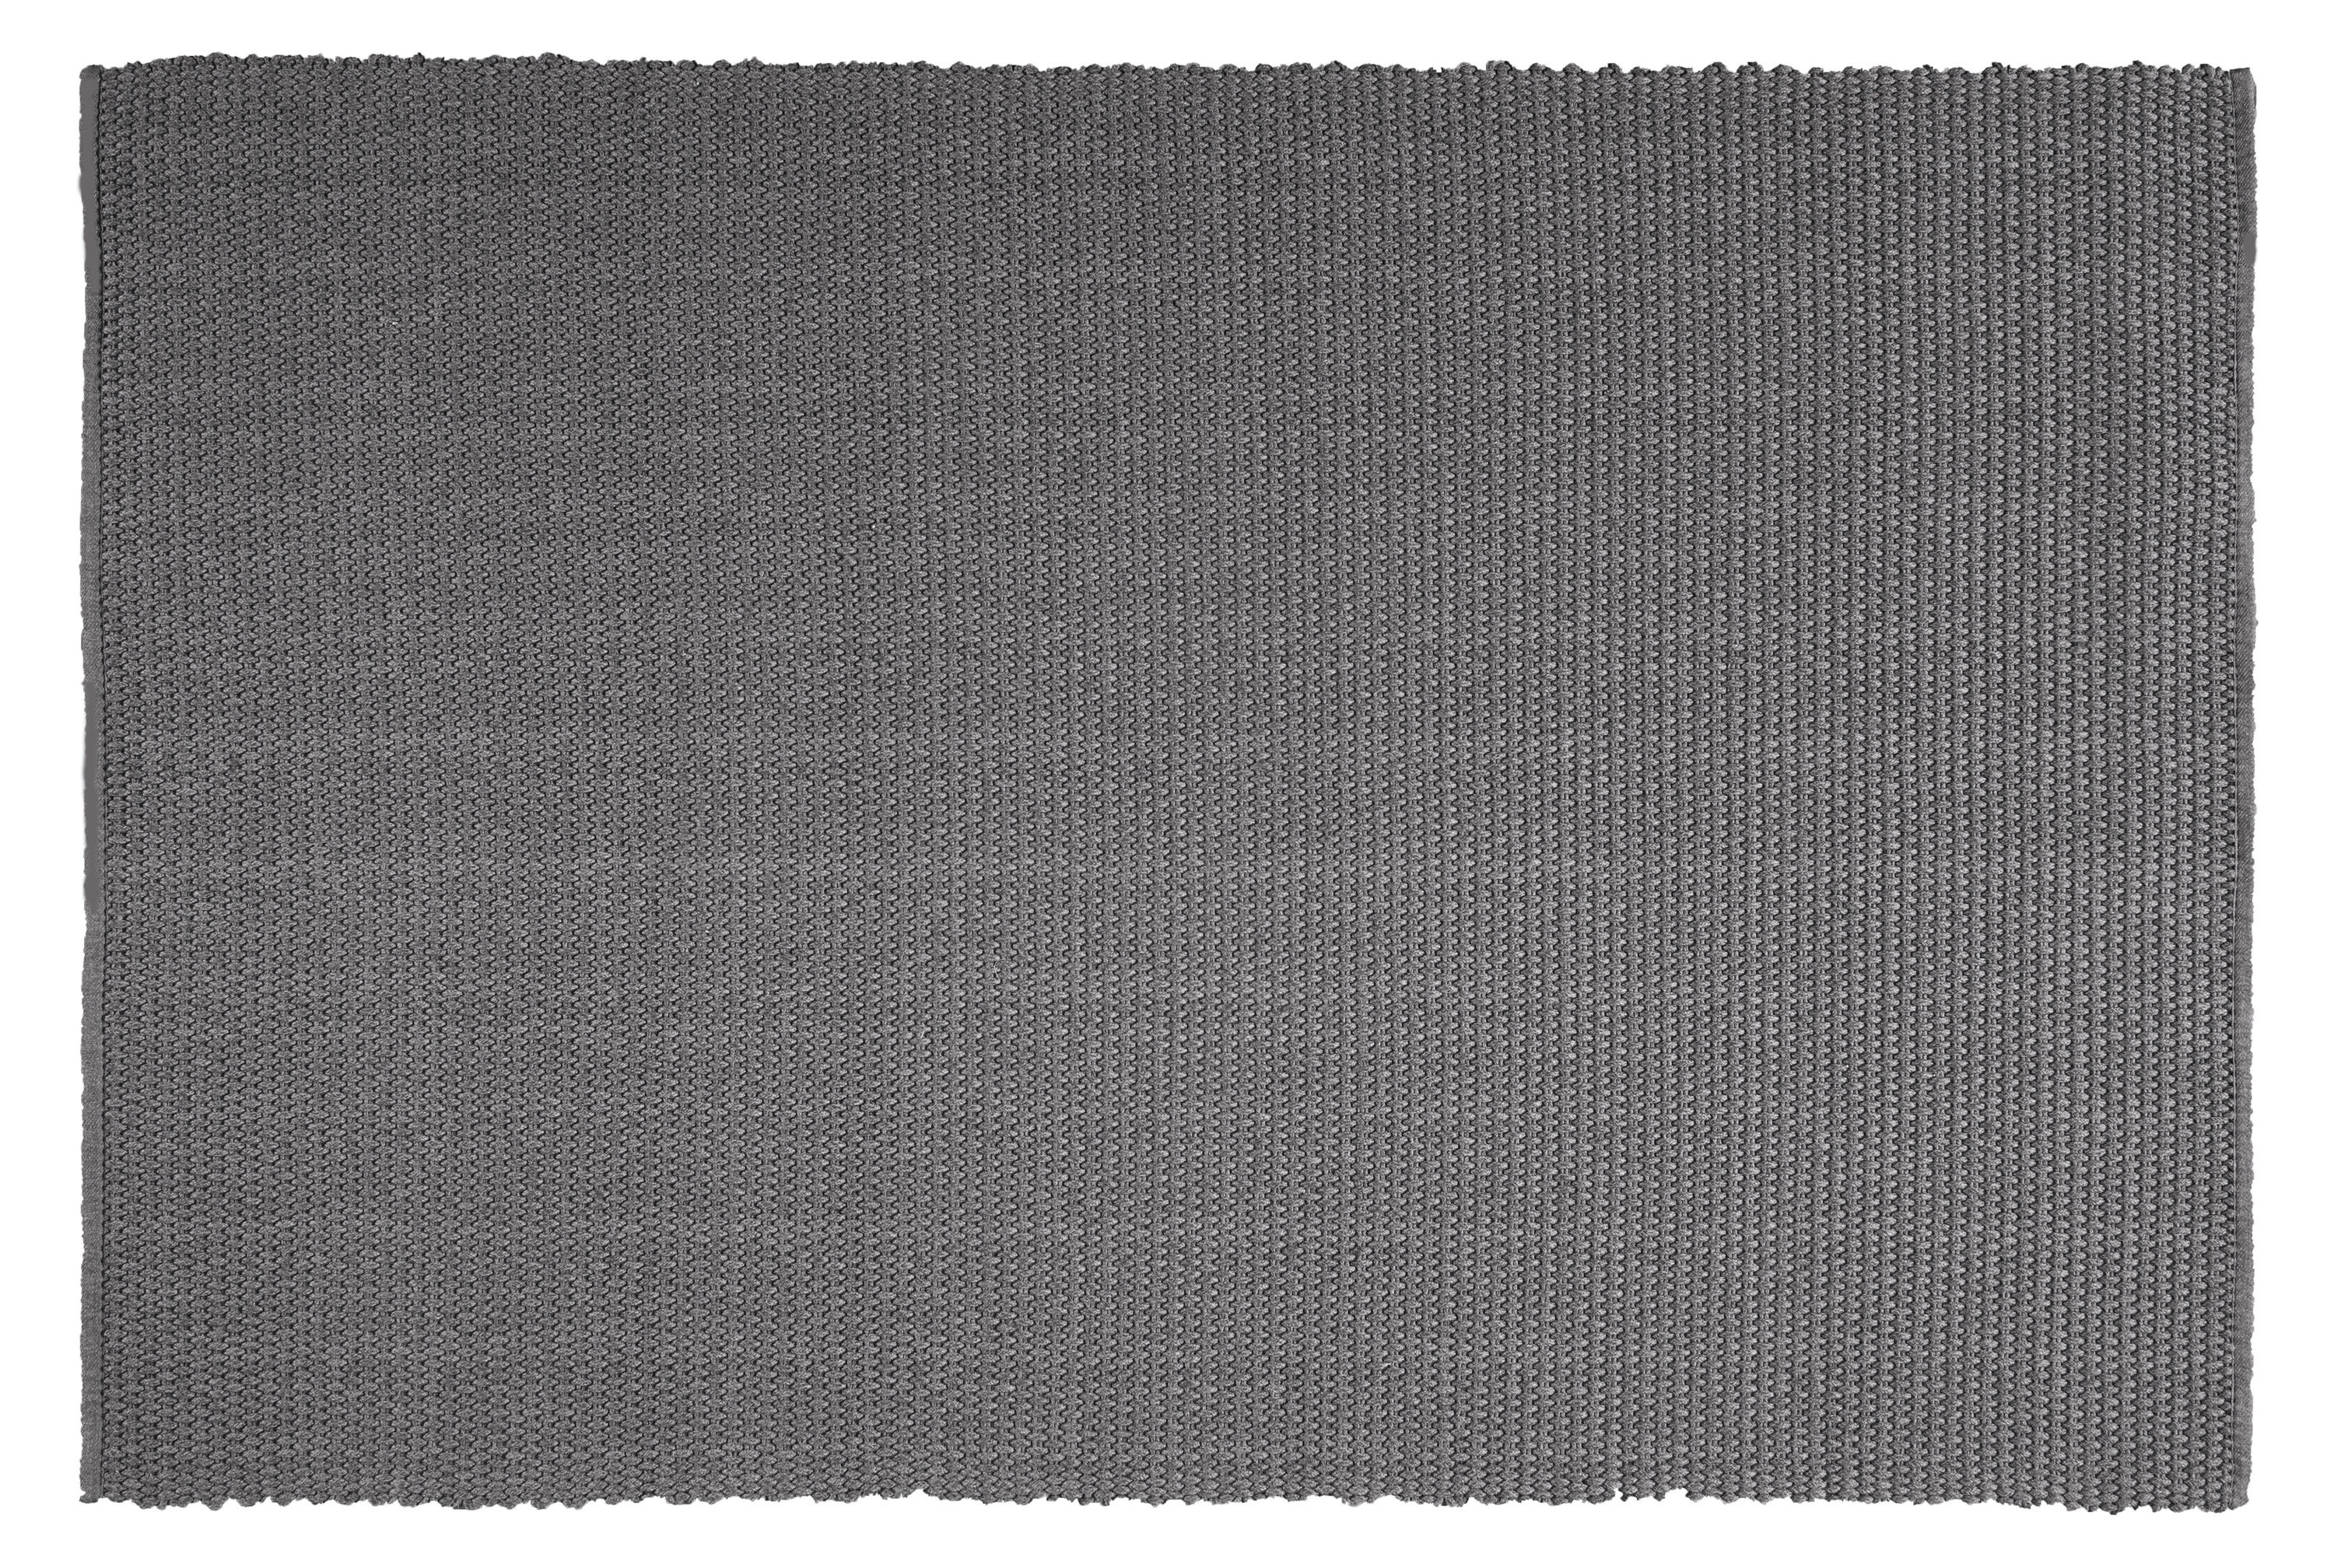 Deck Basalt Rugs From Toulemonde Bochart Architonic